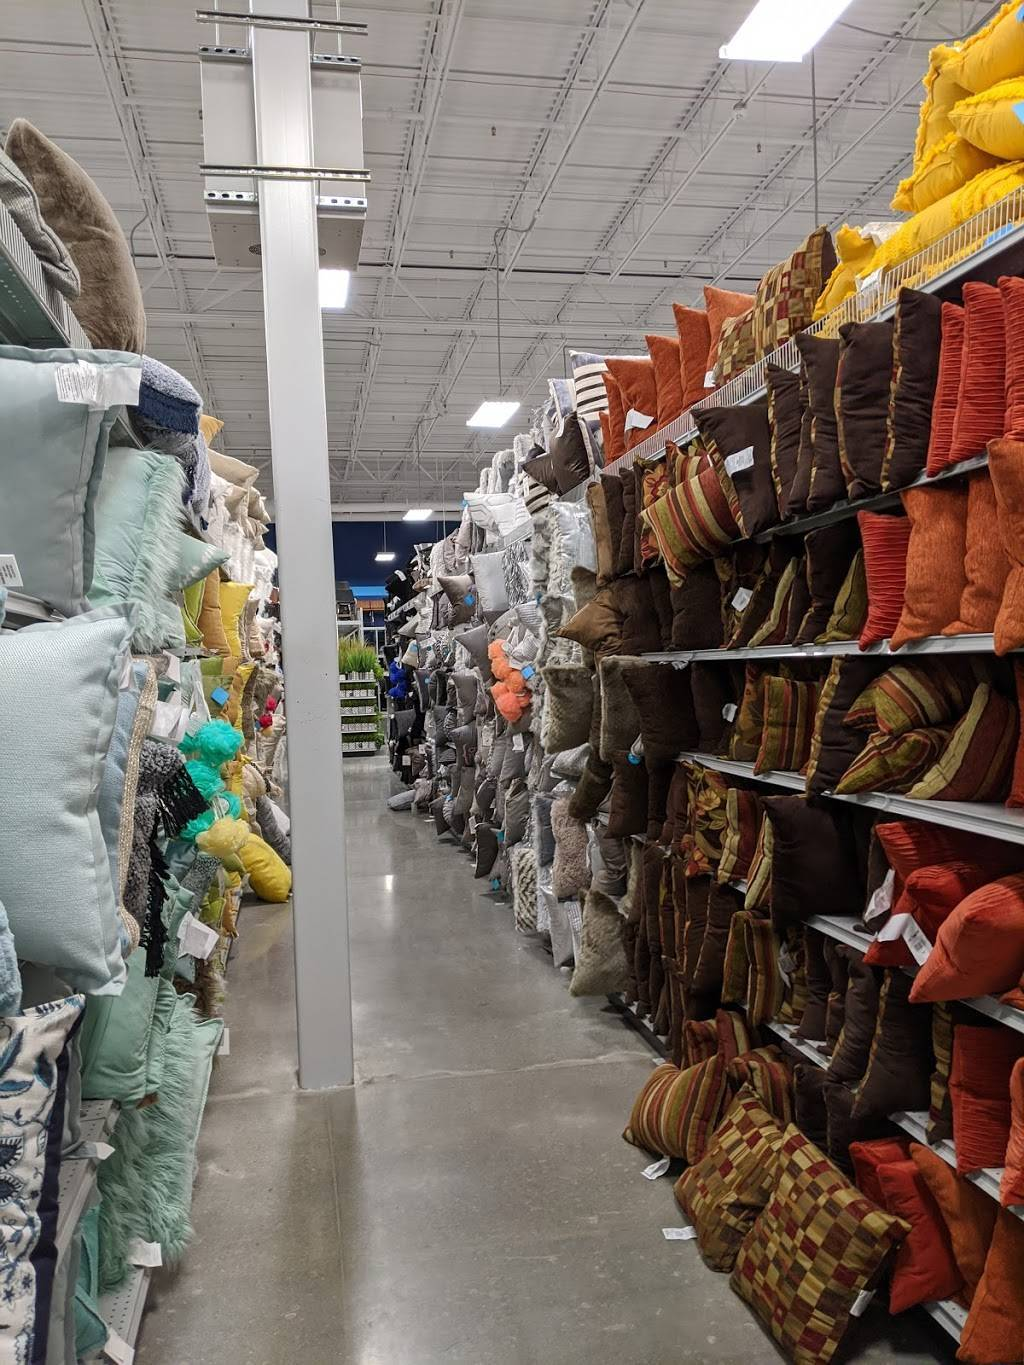 At Home - home goods store  | Photo 7 of 9 | Address: 6845 S 27th St, Lincoln, NE 68512, USA | Phone: (402) 417-1000